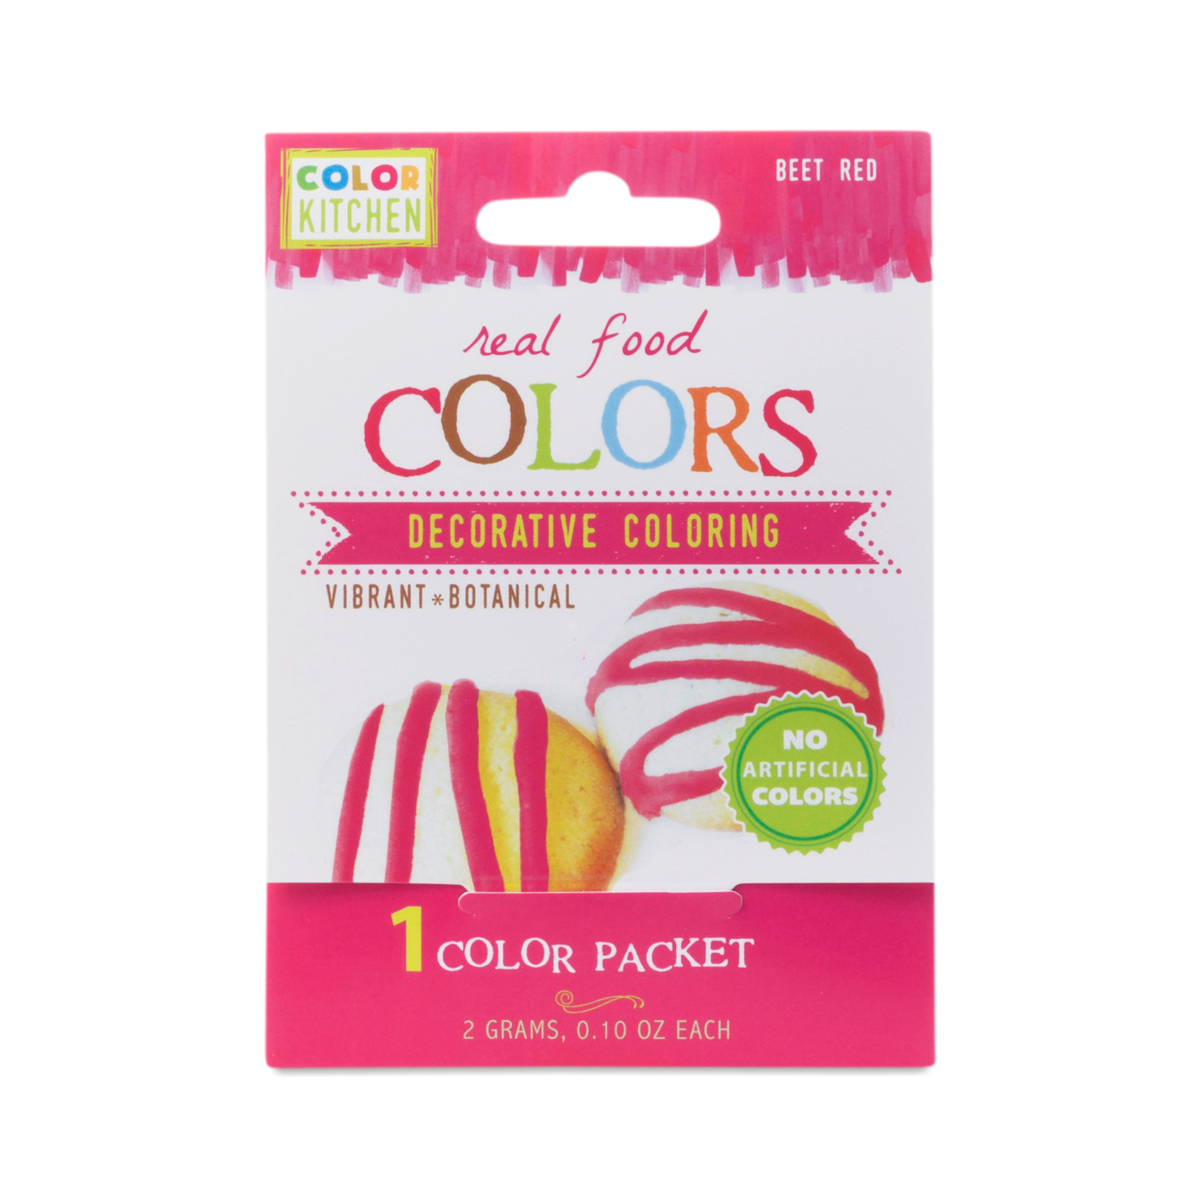 Color Kitchen Beet Red Food Coloring